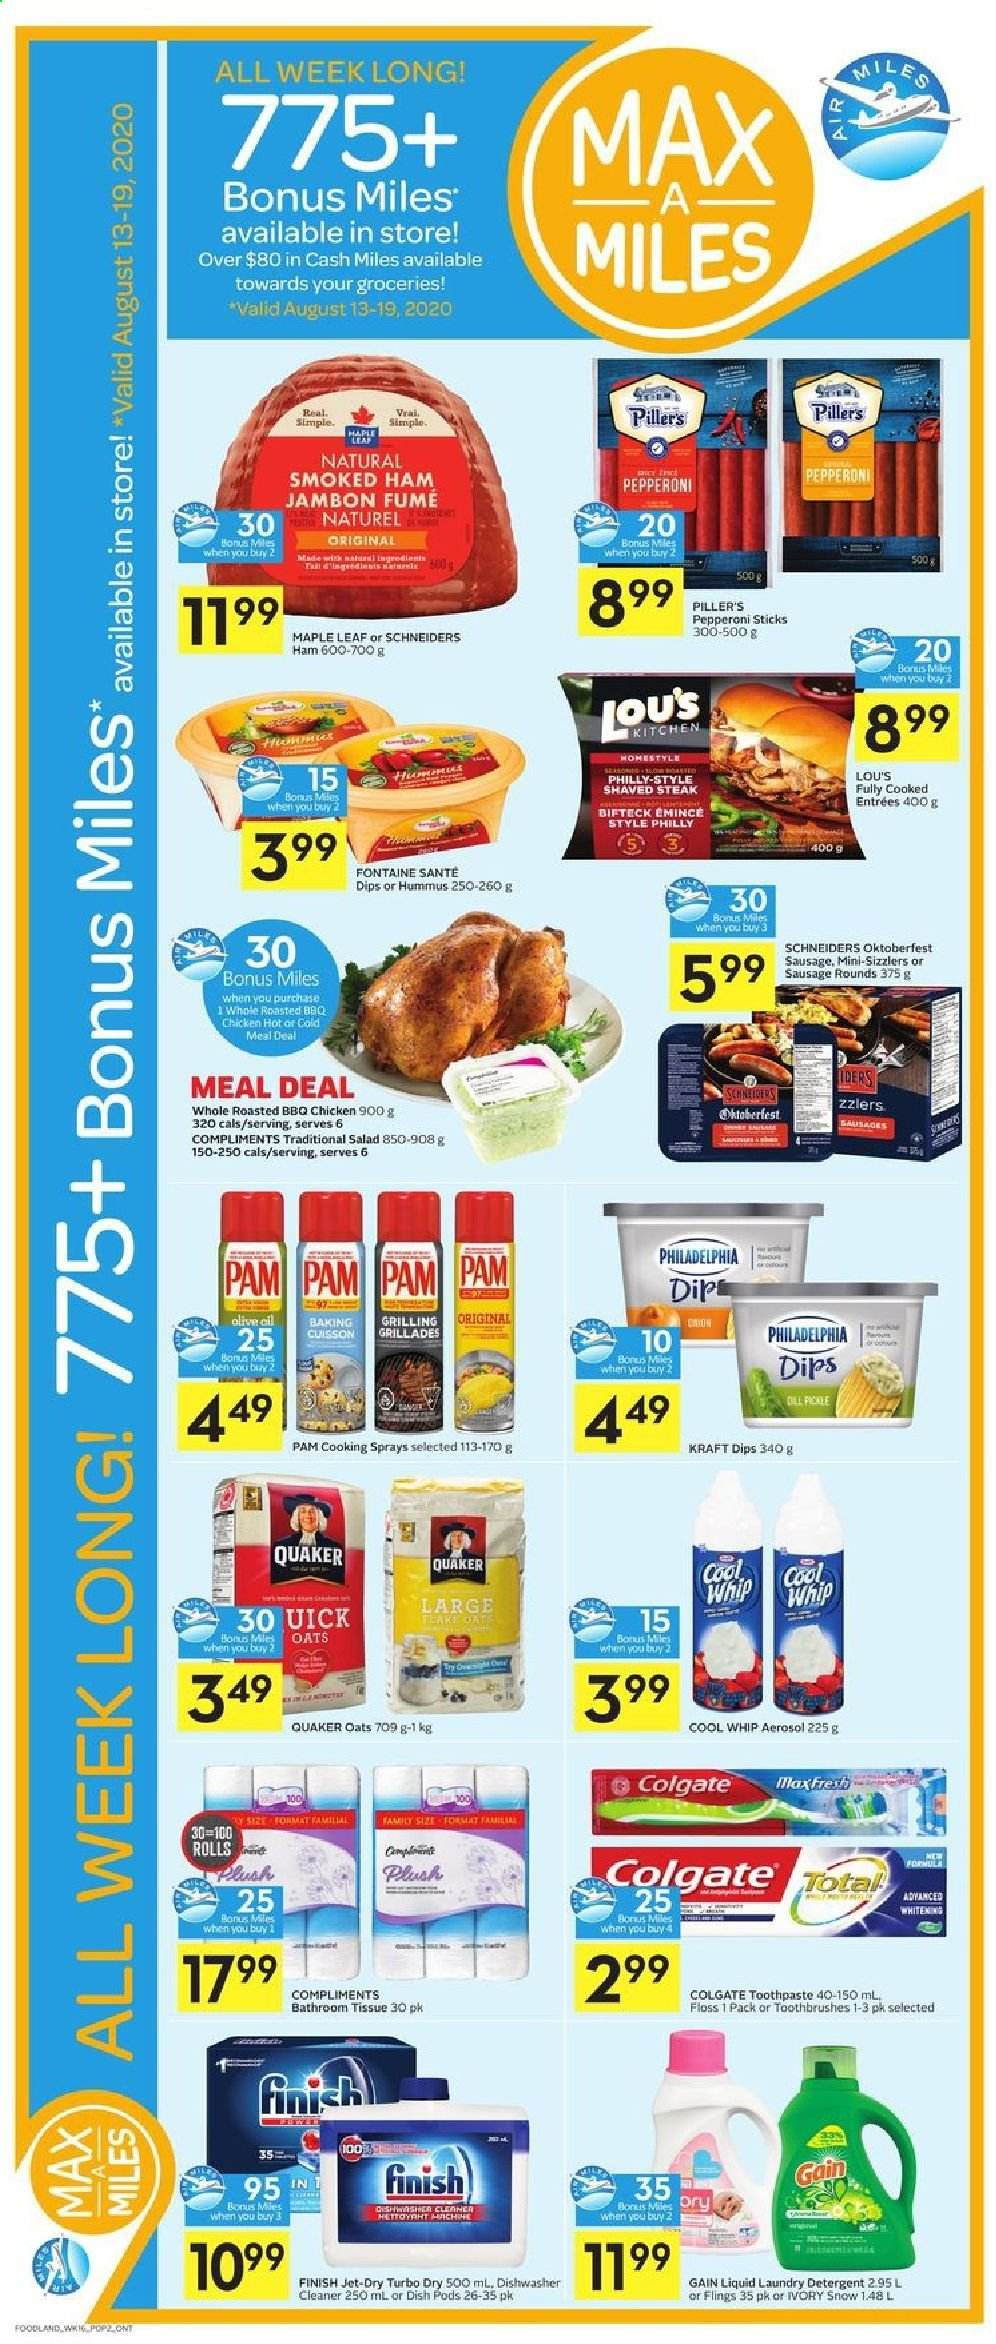 Foodland Flyer - August 13, 2020 - August 19, 2020 - Sales products - cool whip, detergent, dishwasher, colgate, gain, sausage, ham, hummus, philadelphia, chicken, pepperoni, oats, onion, steak, smoked ham, toothpaste, jambon, finish, cool. Page 4.